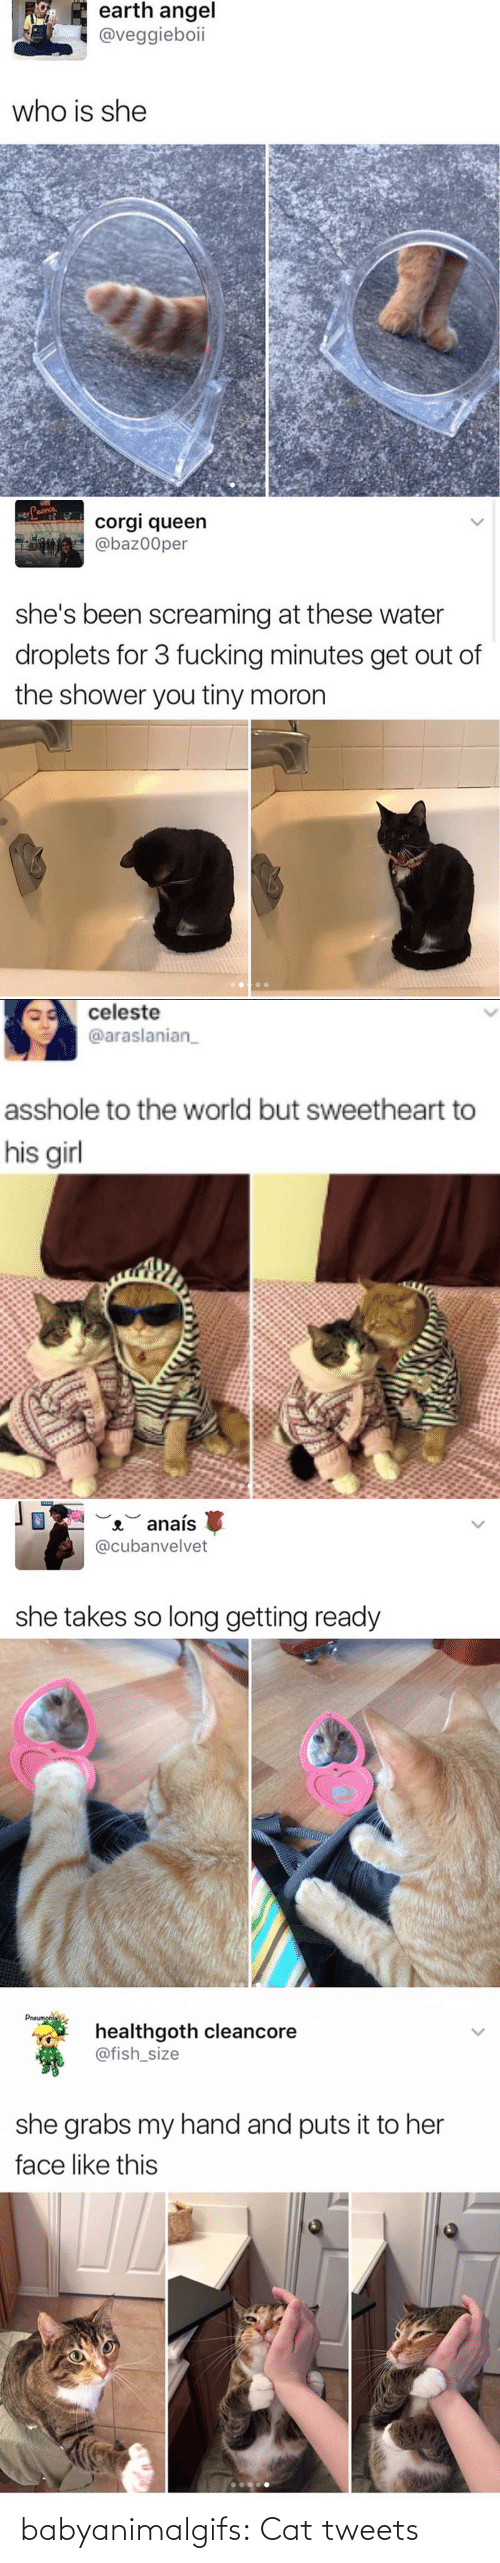 Tweets: babyanimalgifs: Cat tweets